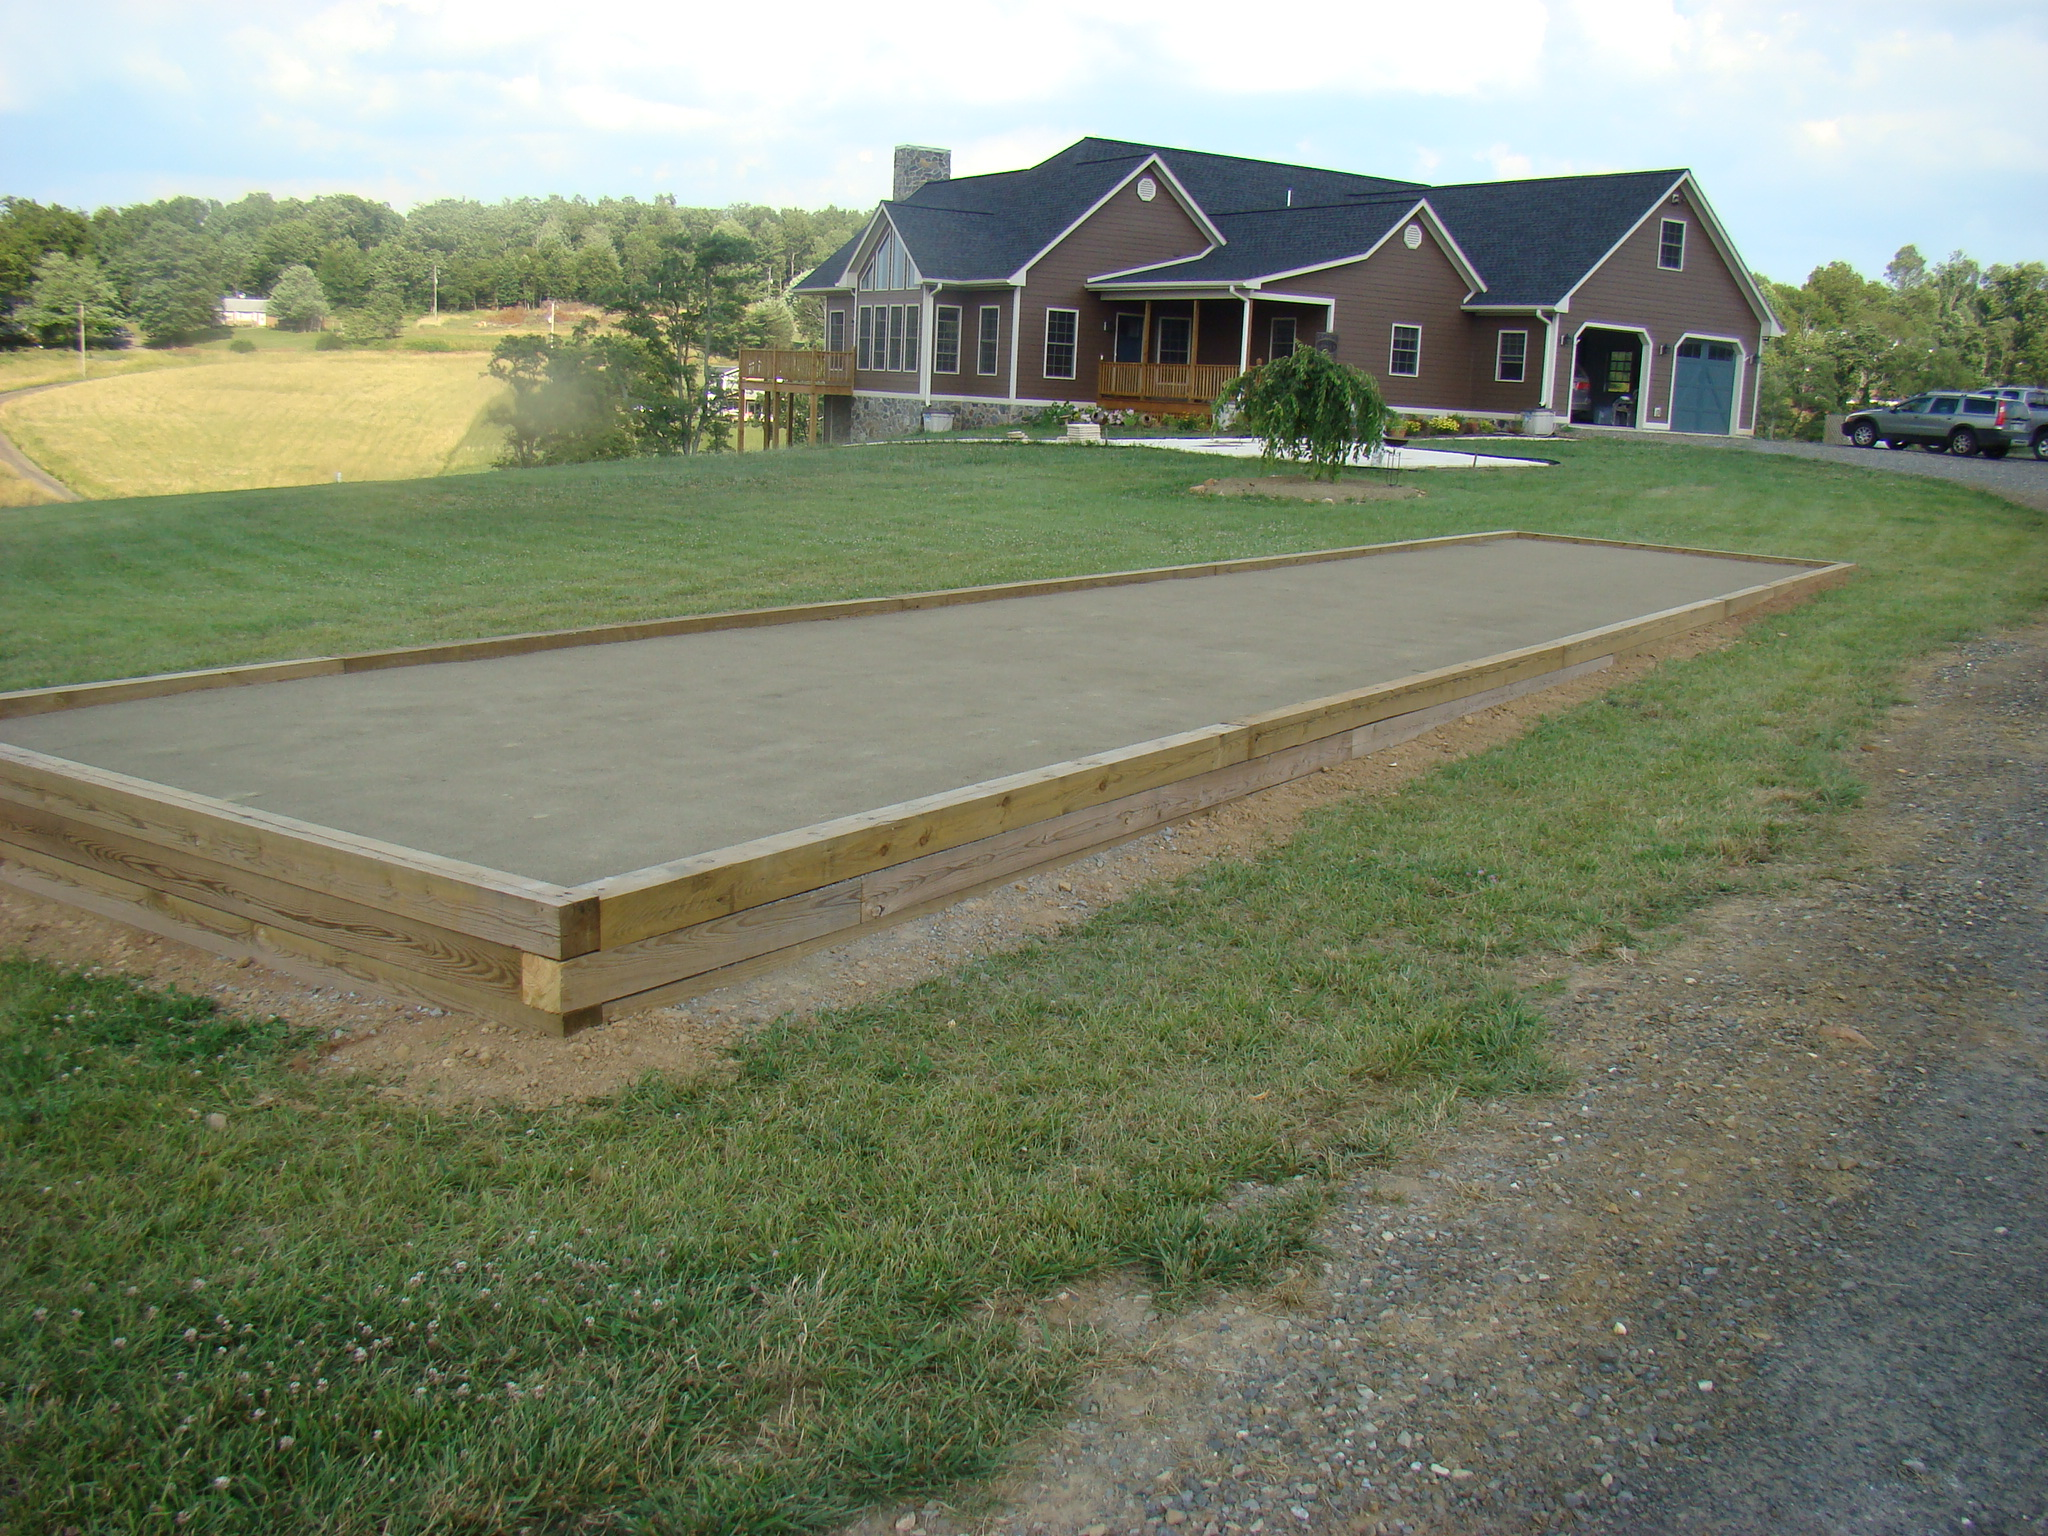 Bocce ball court | Ocampo Lawn Care & Landscaping